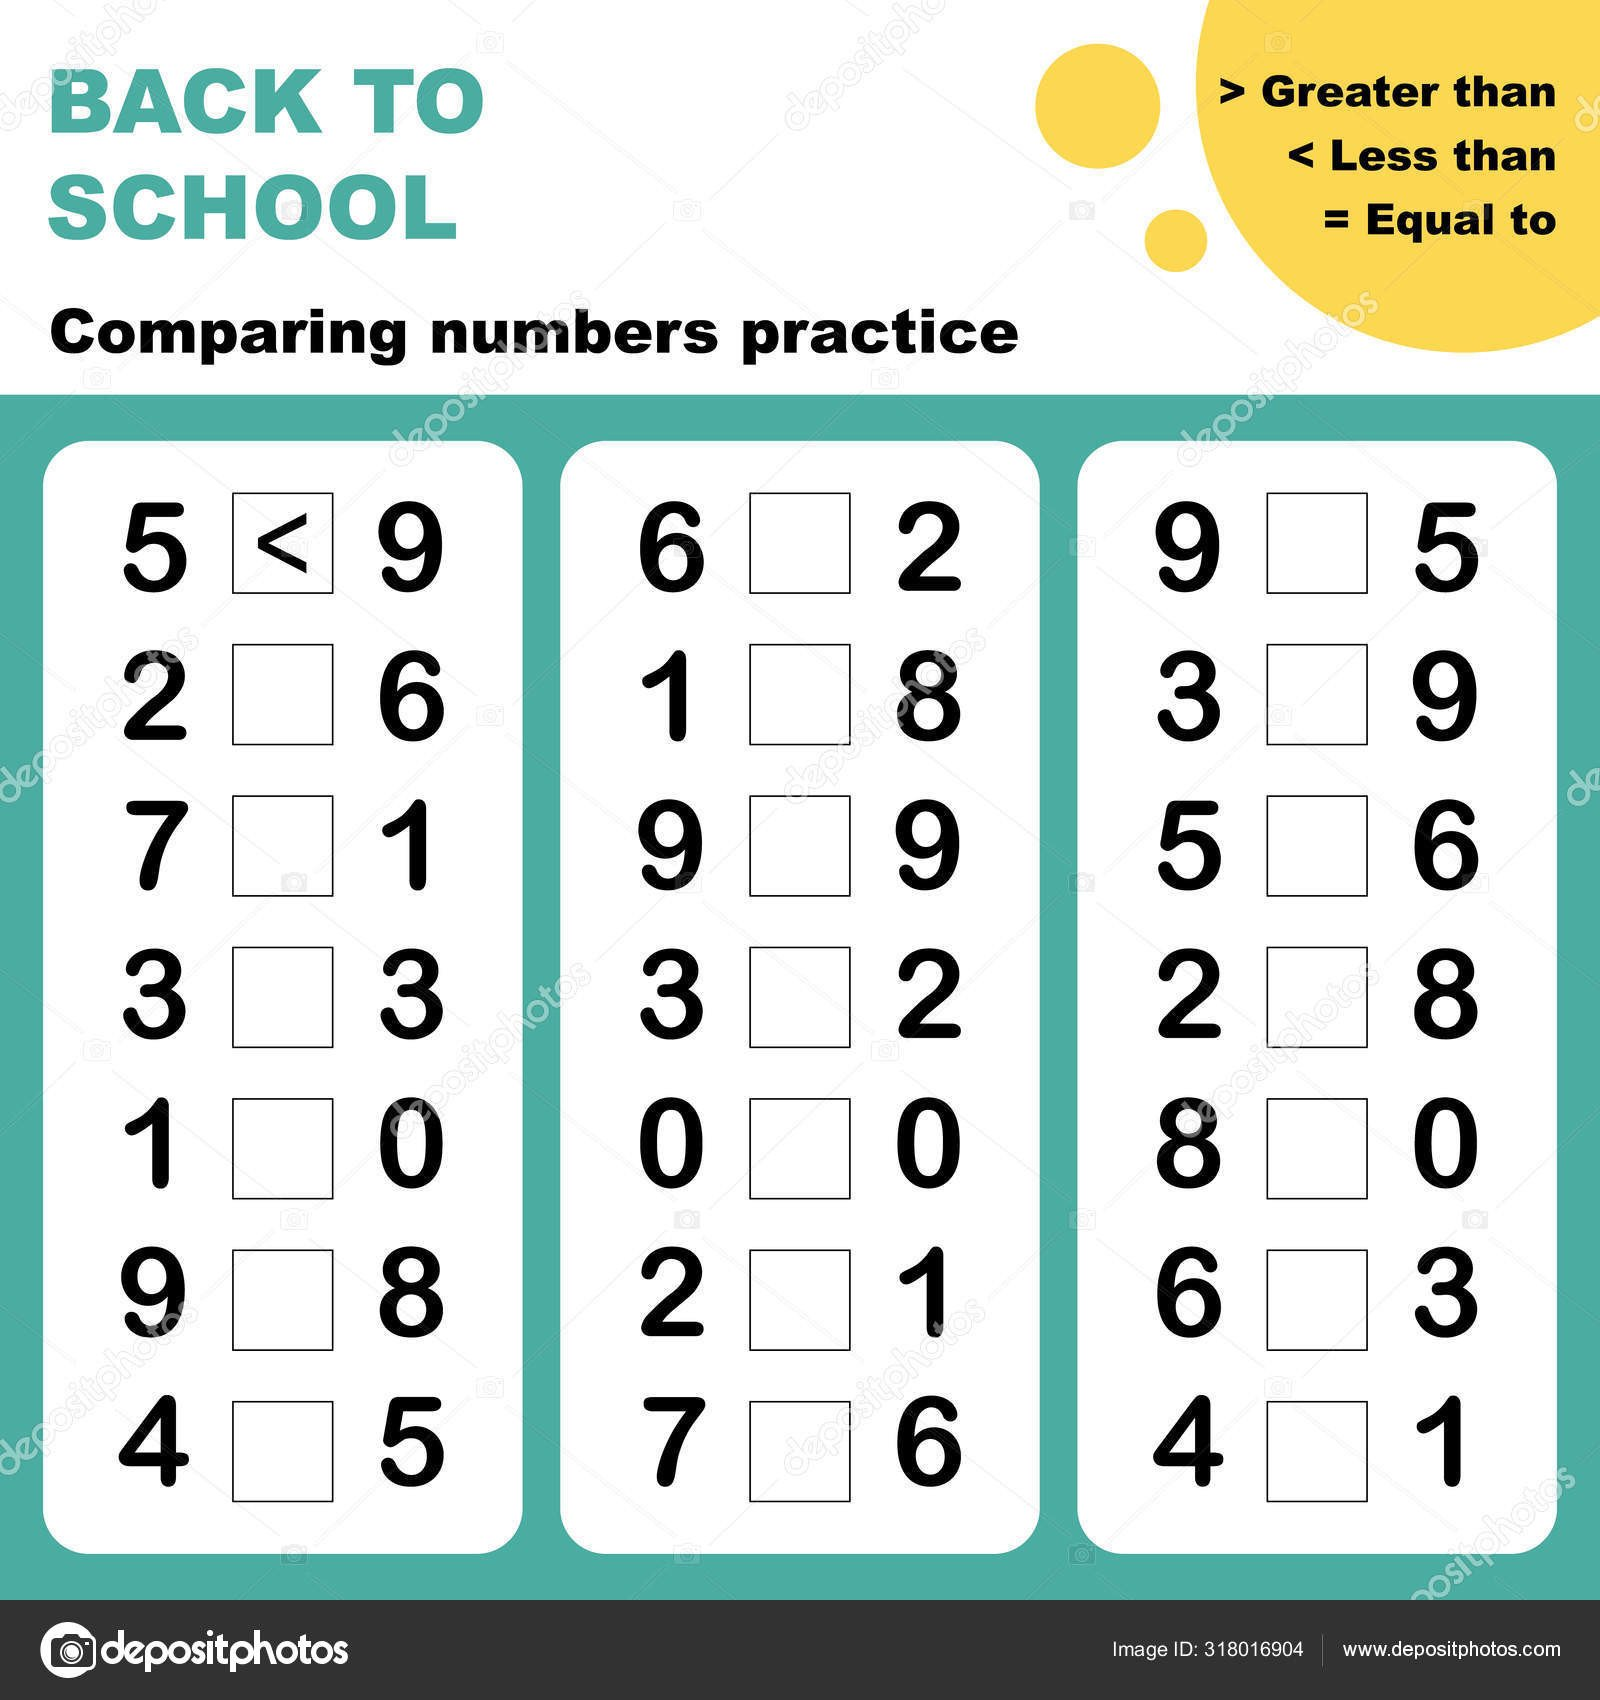 Comparing Numbers Worksheets for Kindergarten Paring Numbers Worksheet Easy Worksheet for Children In Preschool Elementary and Middle School